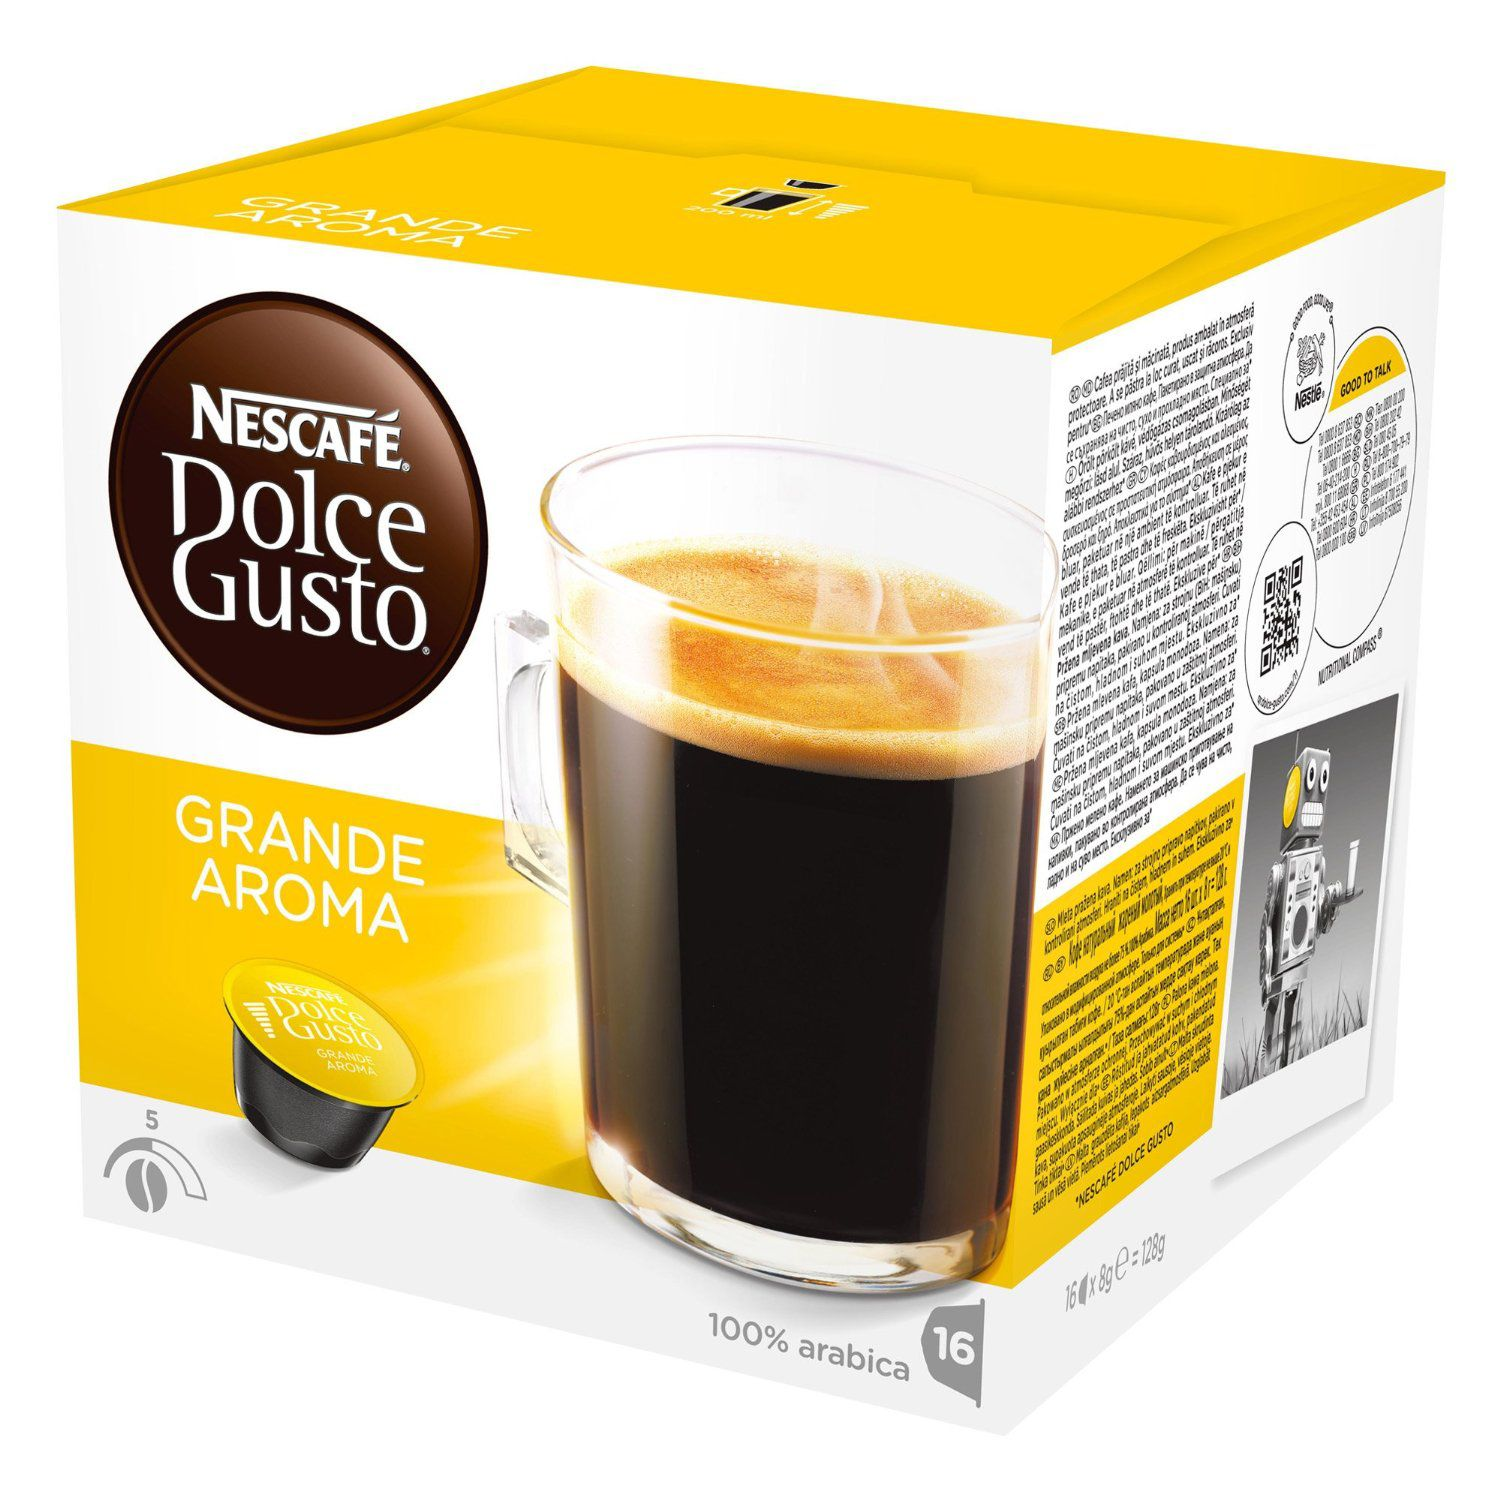 dolce gusto grande nescafe dolce gusto online at bobby the coffee guy. Black Bedroom Furniture Sets. Home Design Ideas